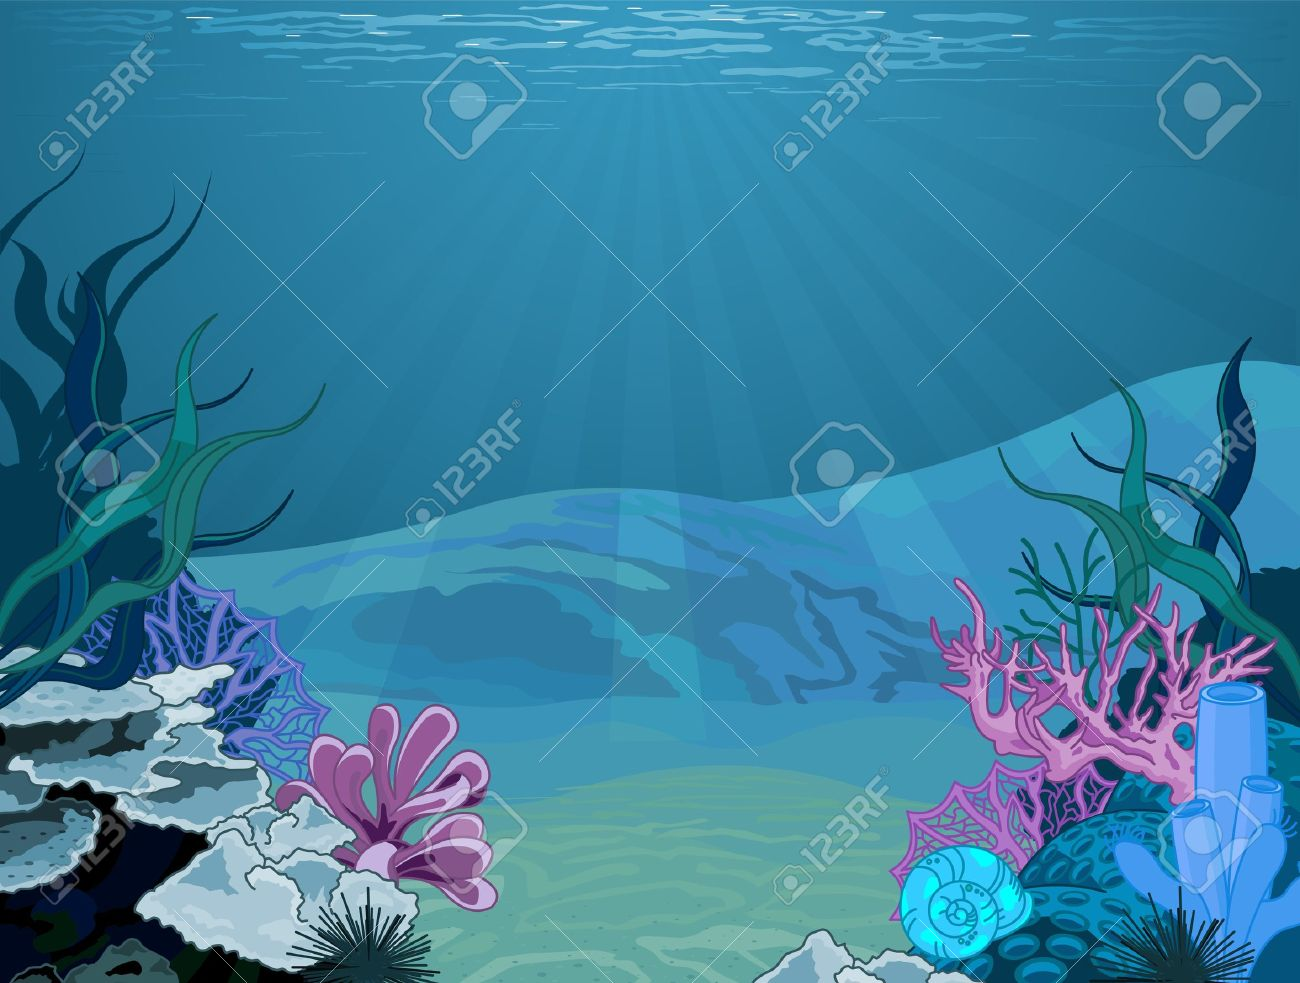 2,098 Underwater Scene Stock Vector Illustration And Royalty Free.